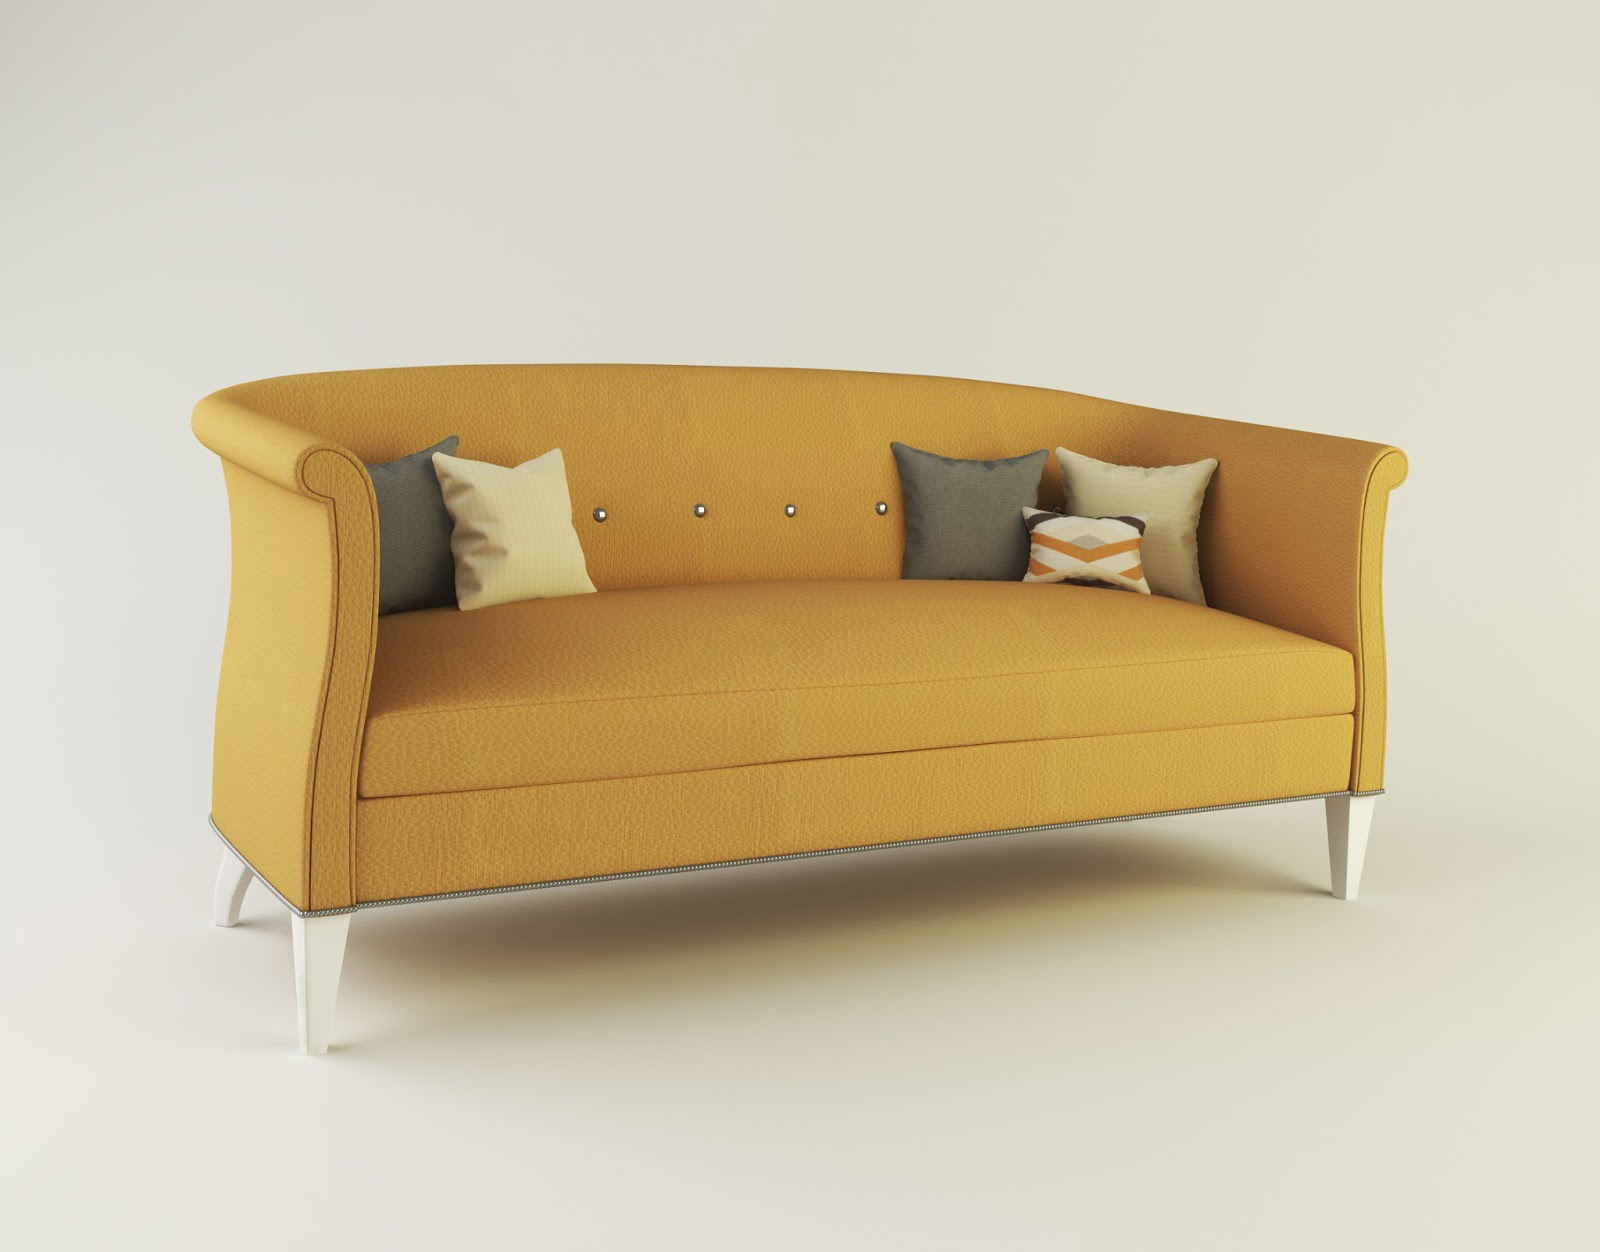 Albert Sofa From Albert Sack Collection By Hickory Chair Furn.